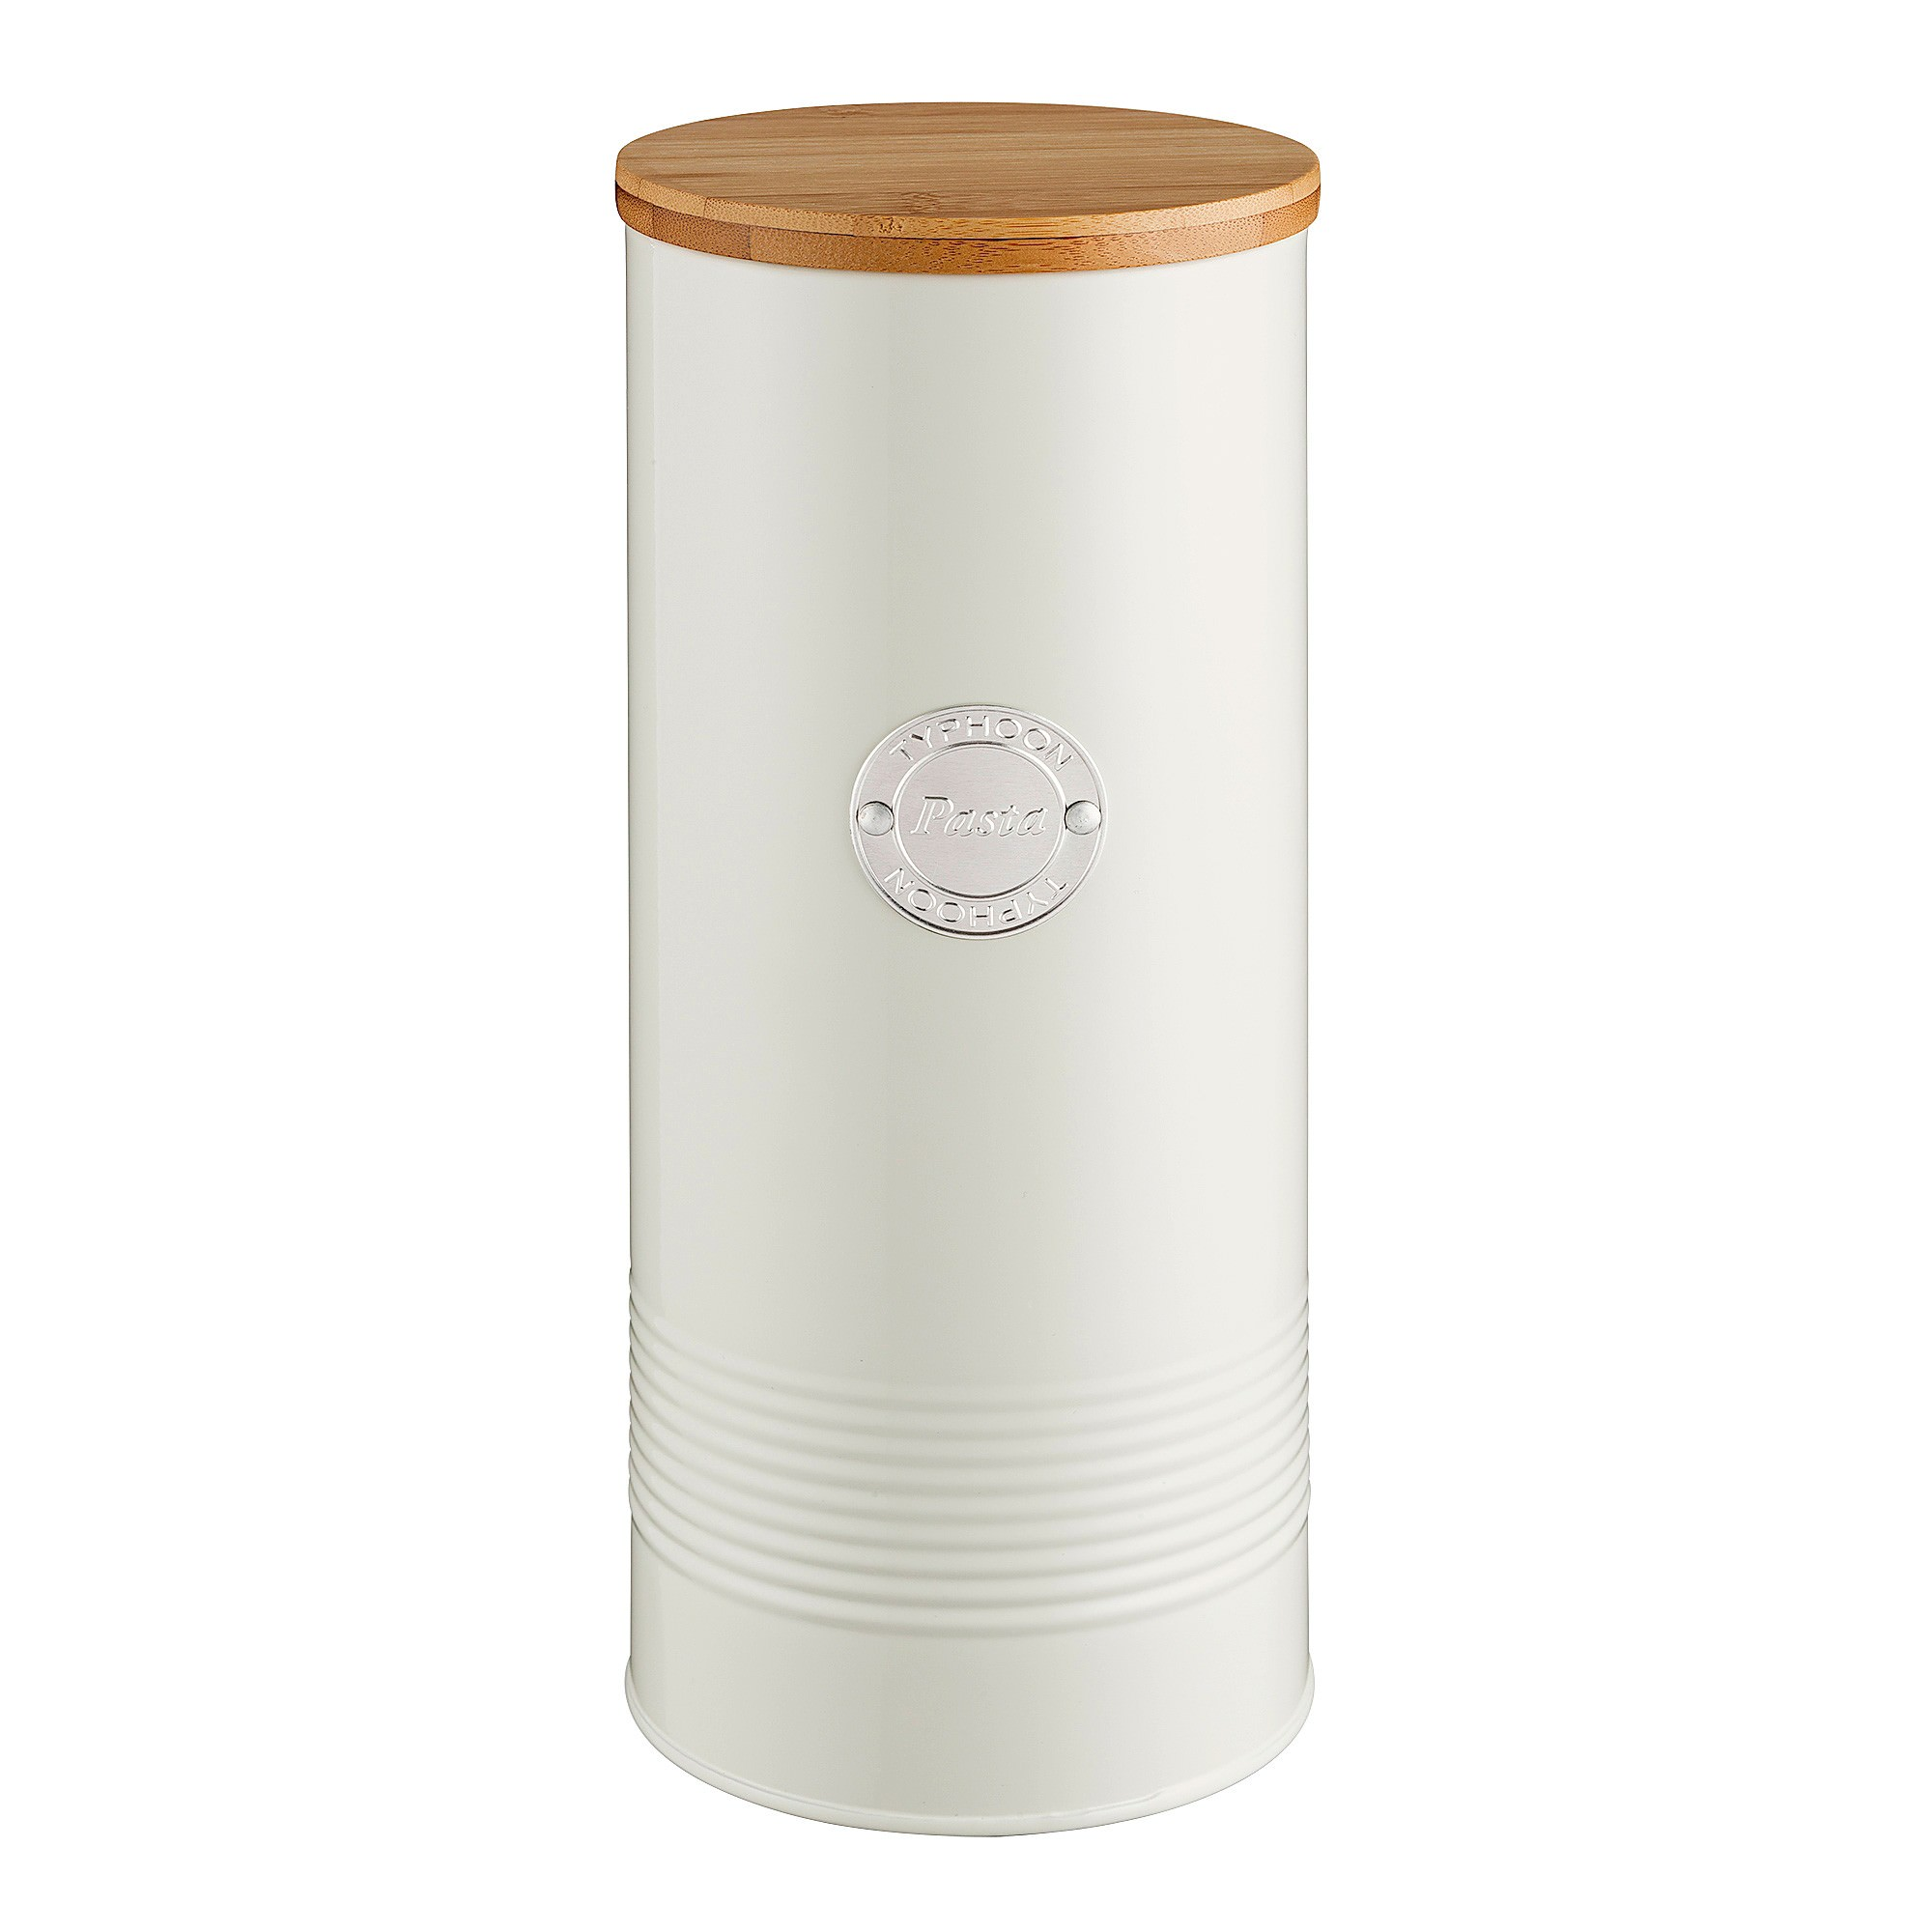 Typhoon Living Pasta Canister, 2.5 Litre, Cream